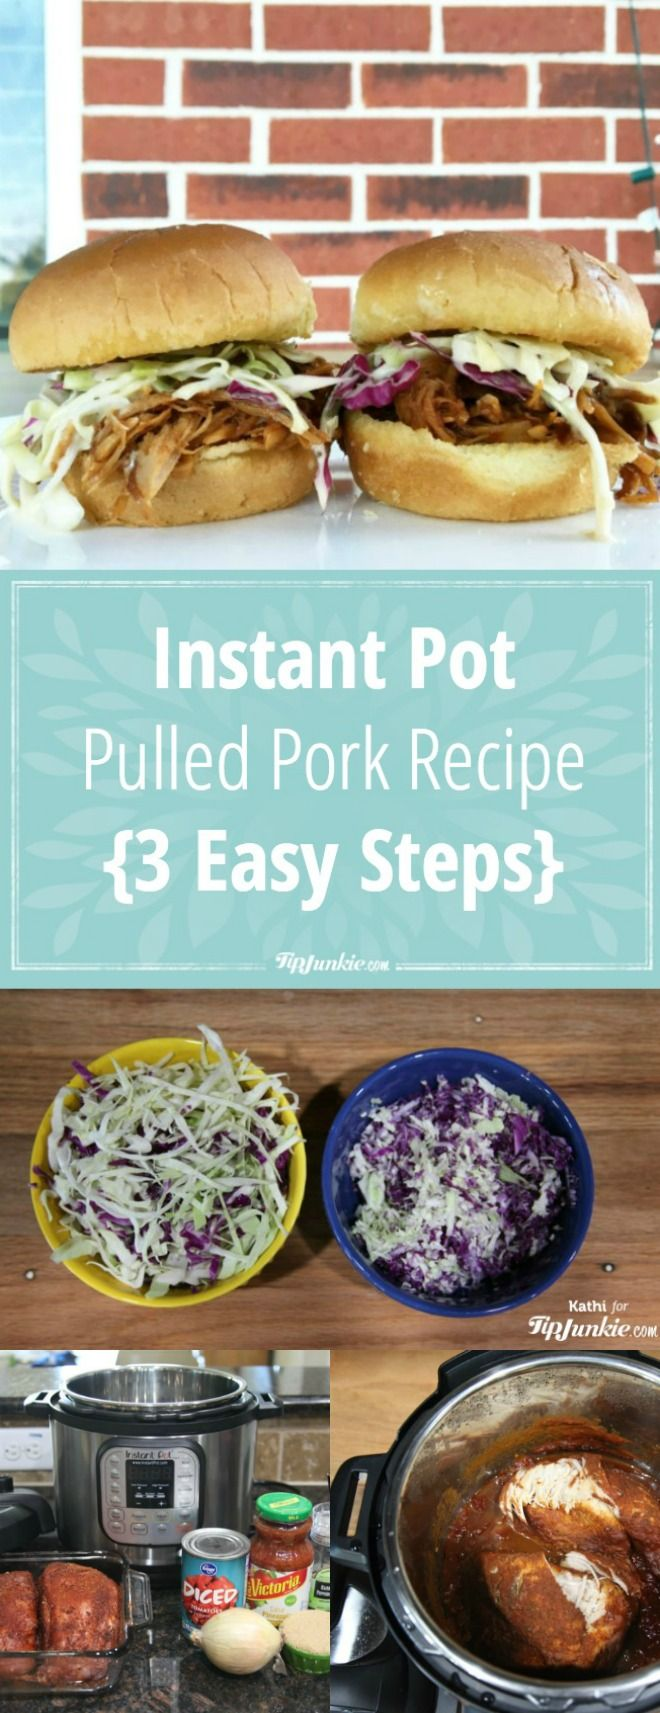 Instant Pot Pulled Pork Recipe {3 Easy Steps}! You are going to LOVE this! via @tipjunkie